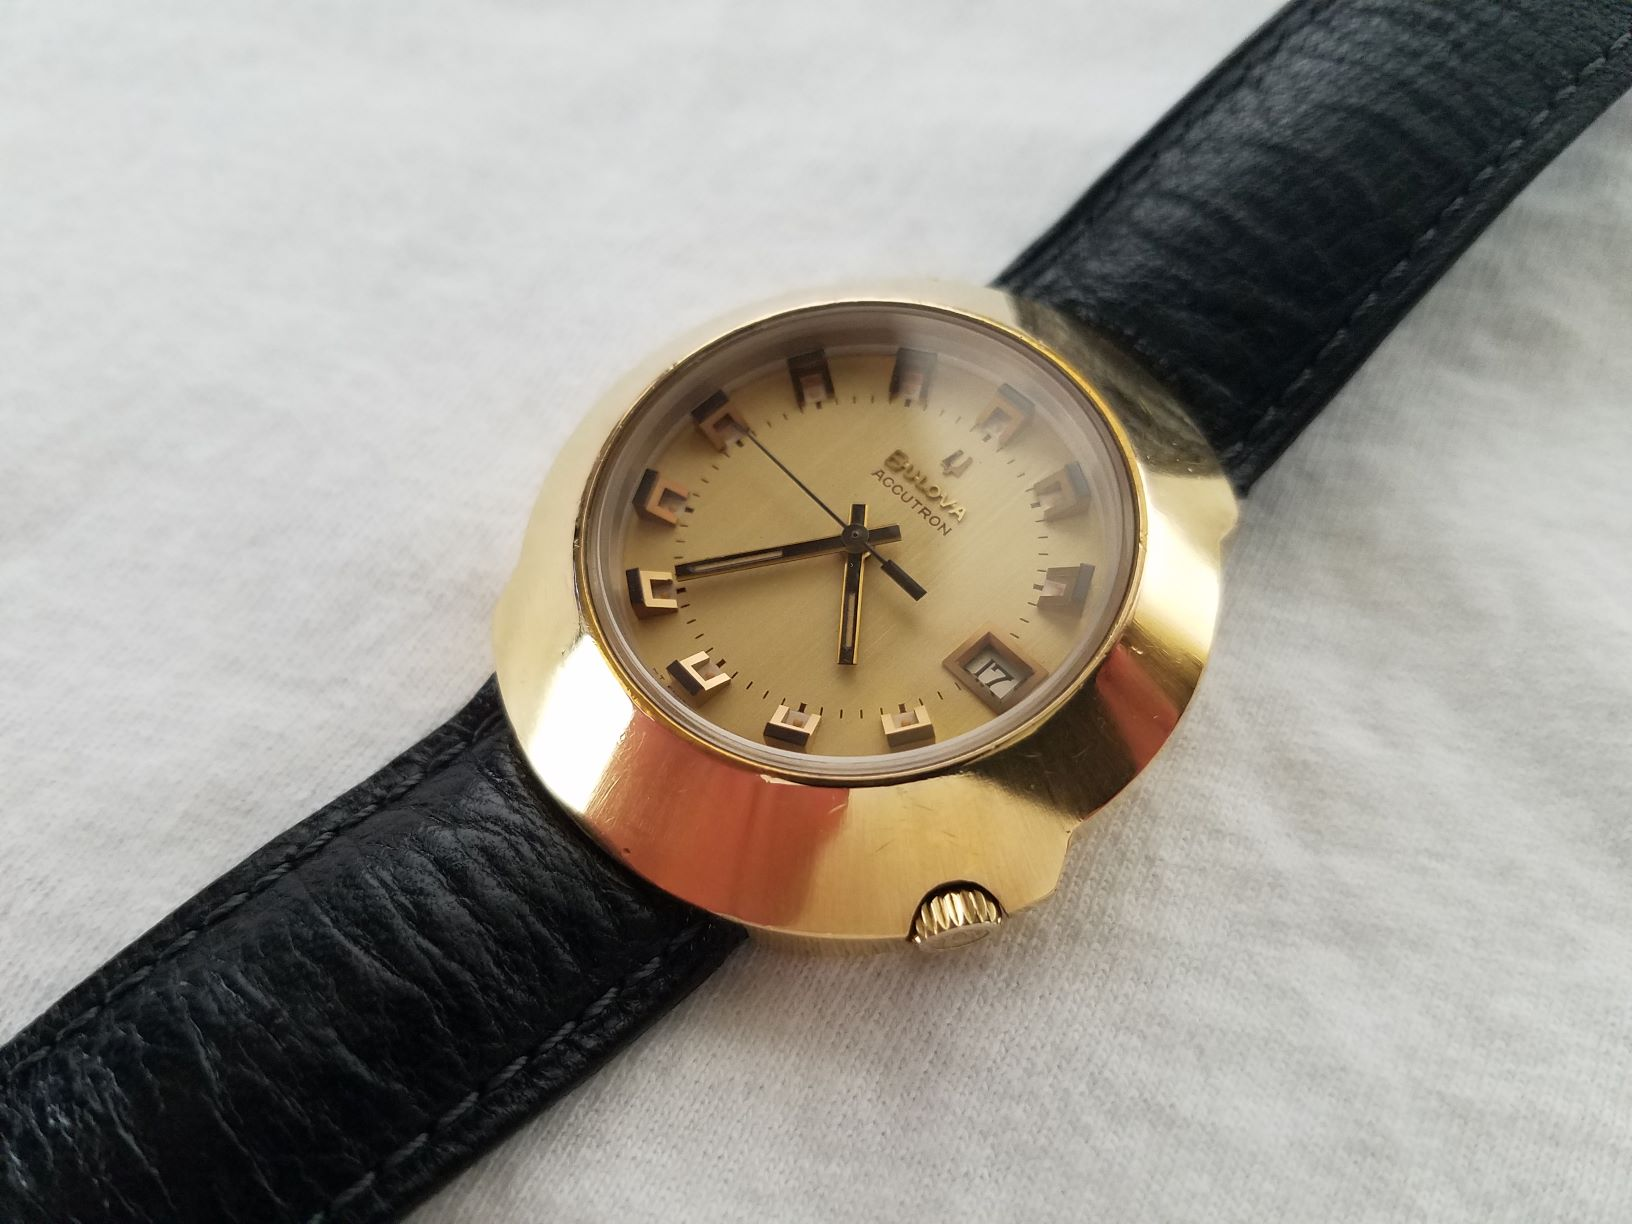 [field_year-1970] Bulova Watch